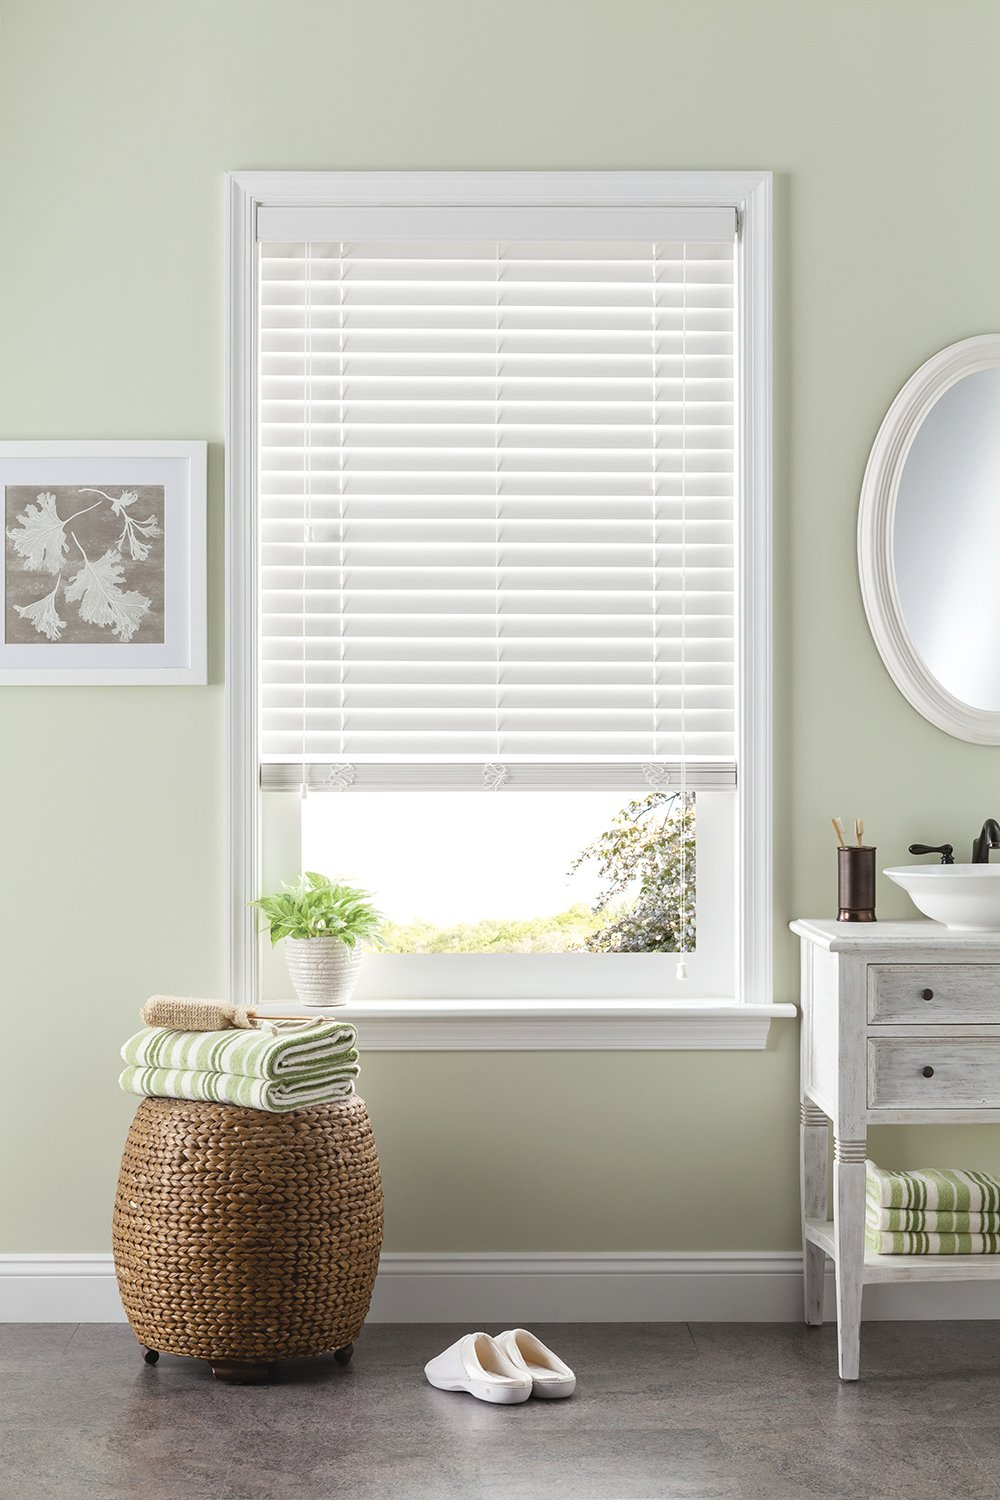 blinds flv wood baliopttdbushadeww video top with the gallery v downbottom raquo option shades bali woven lift down bottom thumb up american